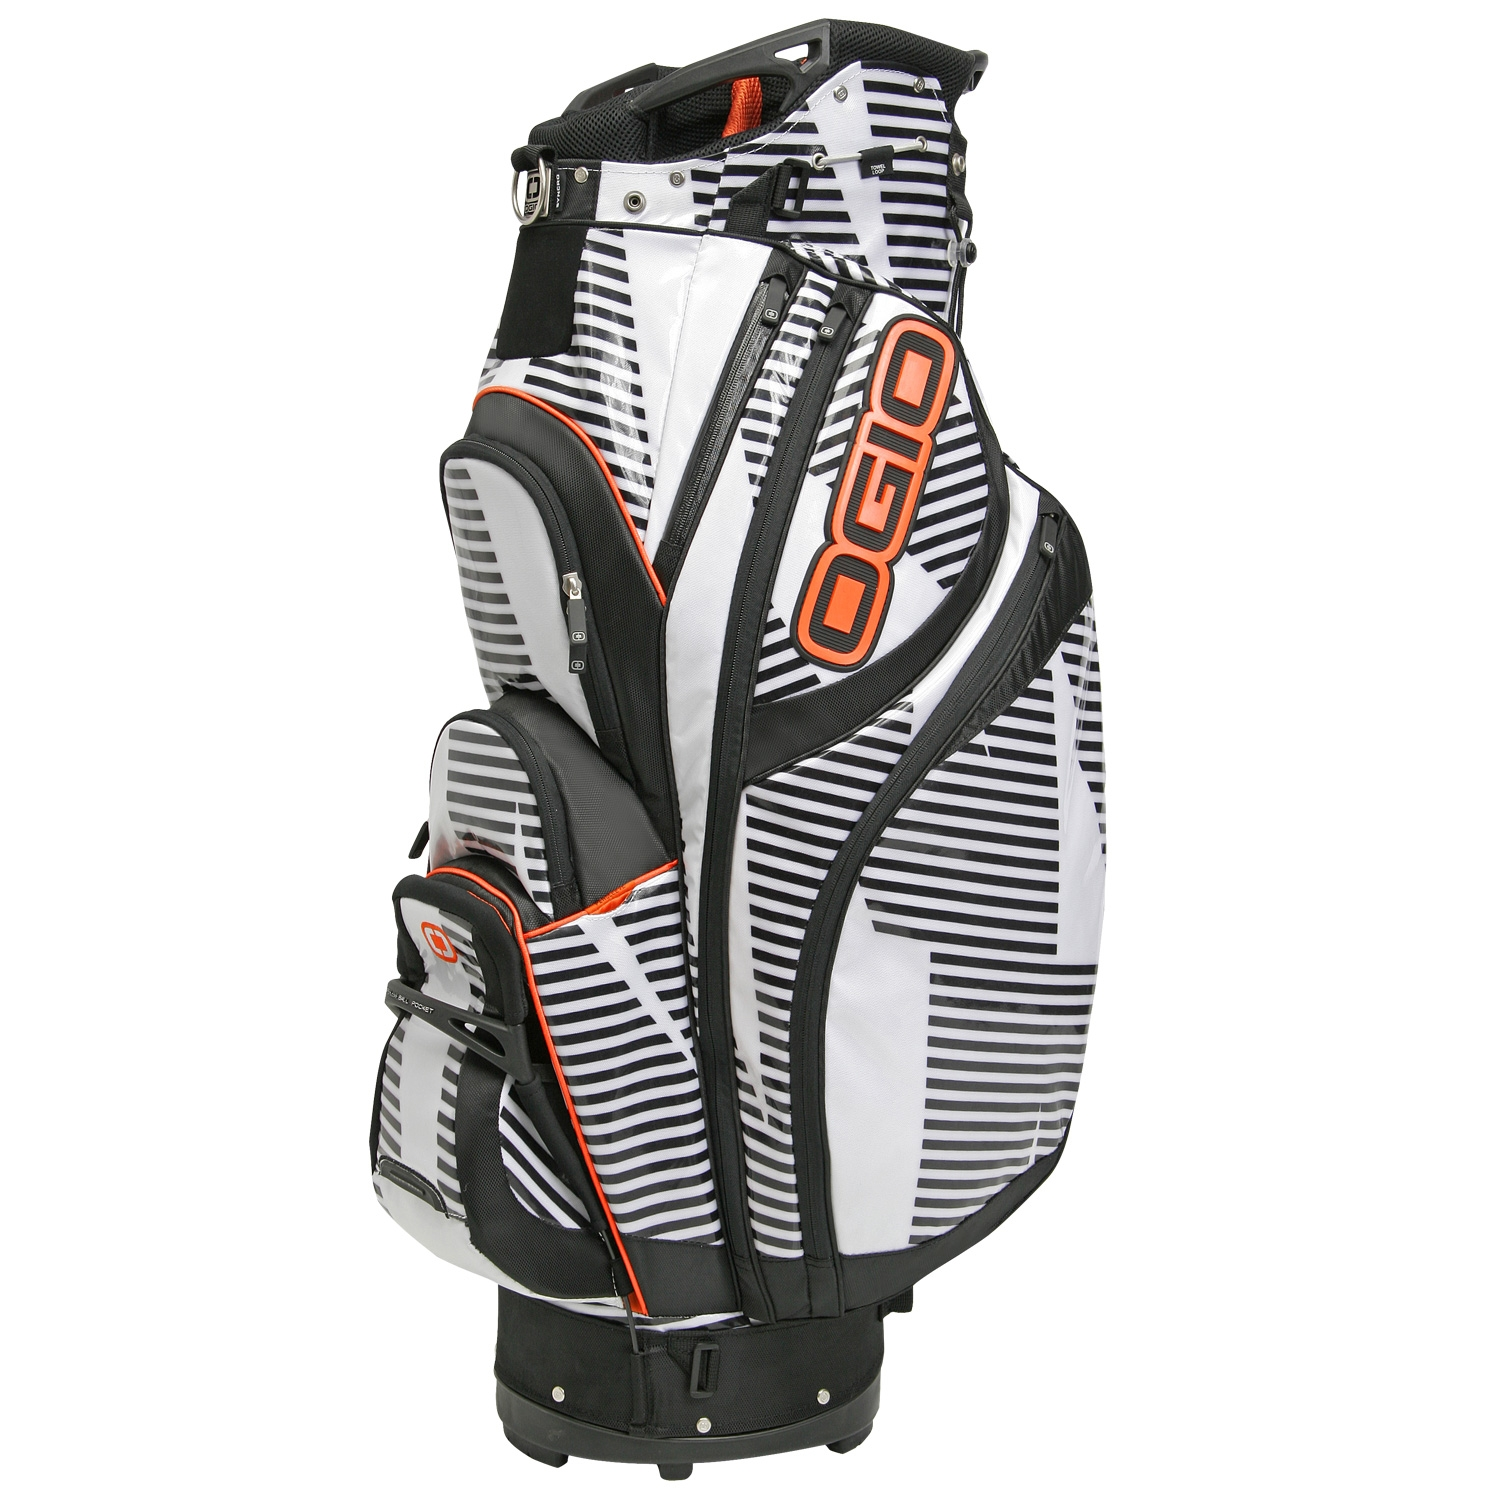 OGIO rocks out with White Stripes